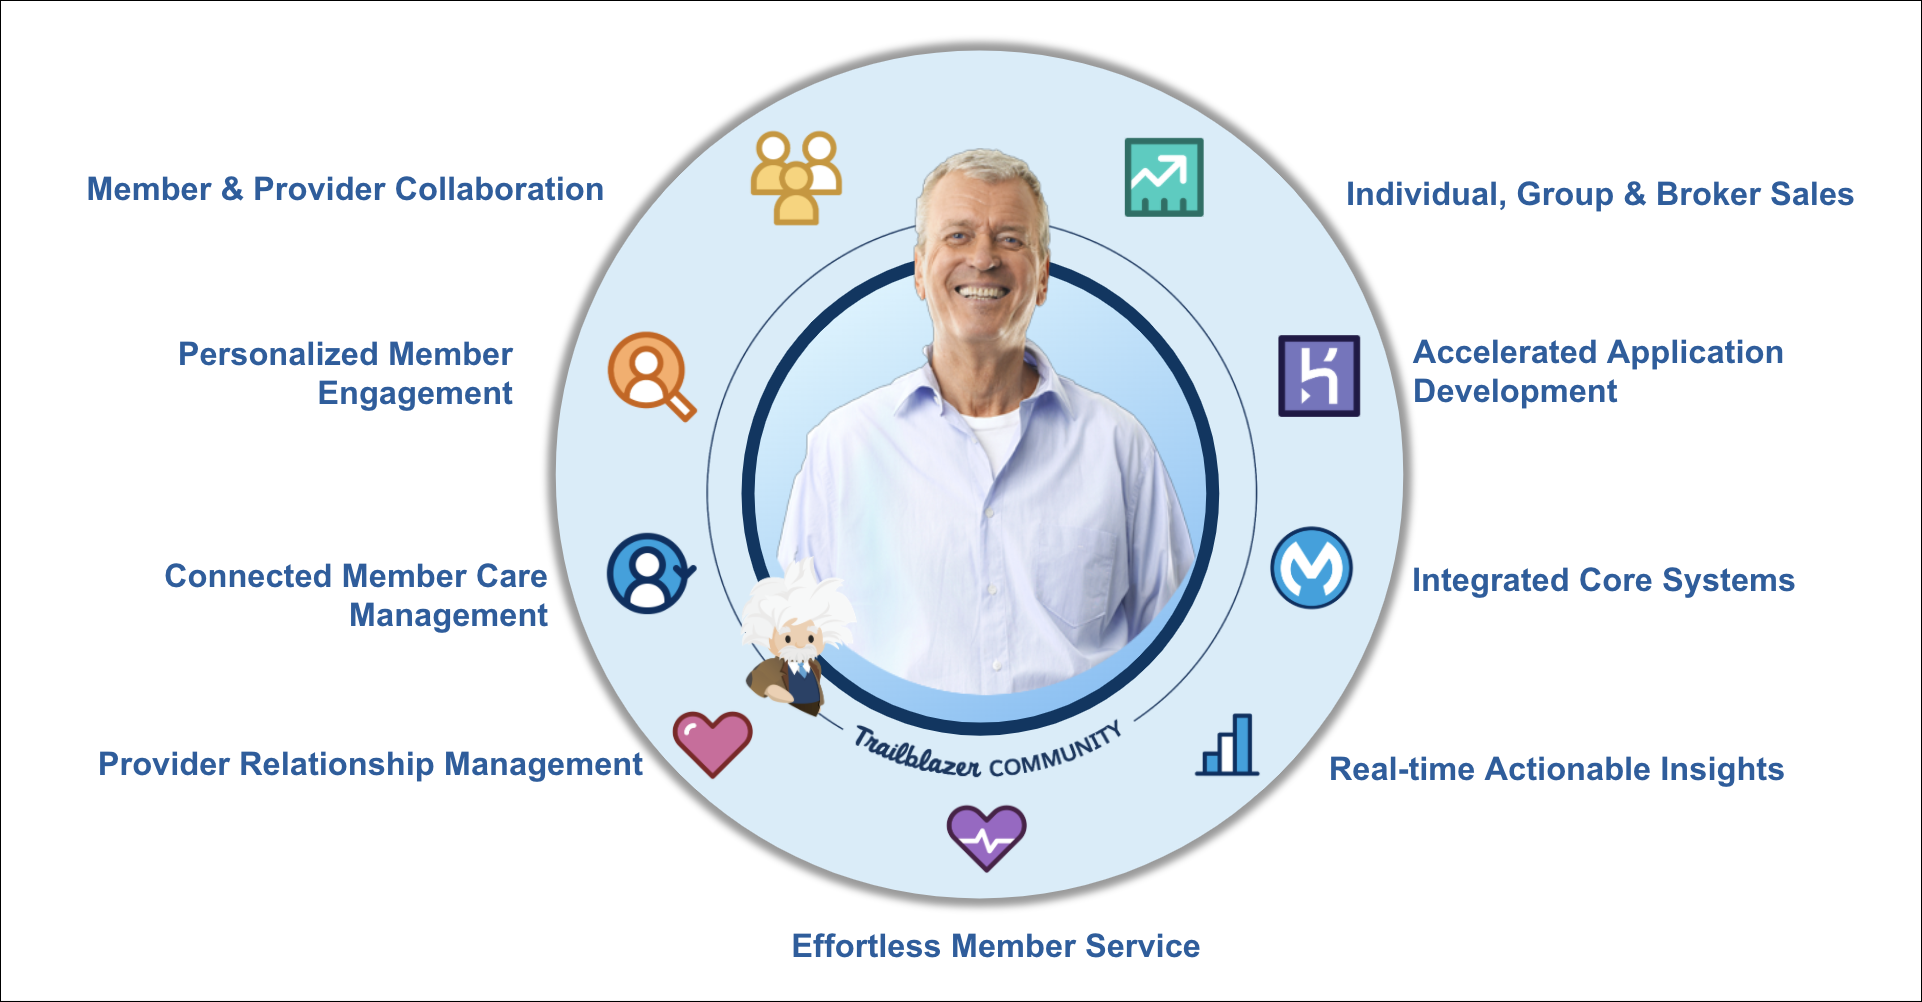 An image of a man smiling in the center. He is surrounded by the nine Salesforce functions that support the payer industry.